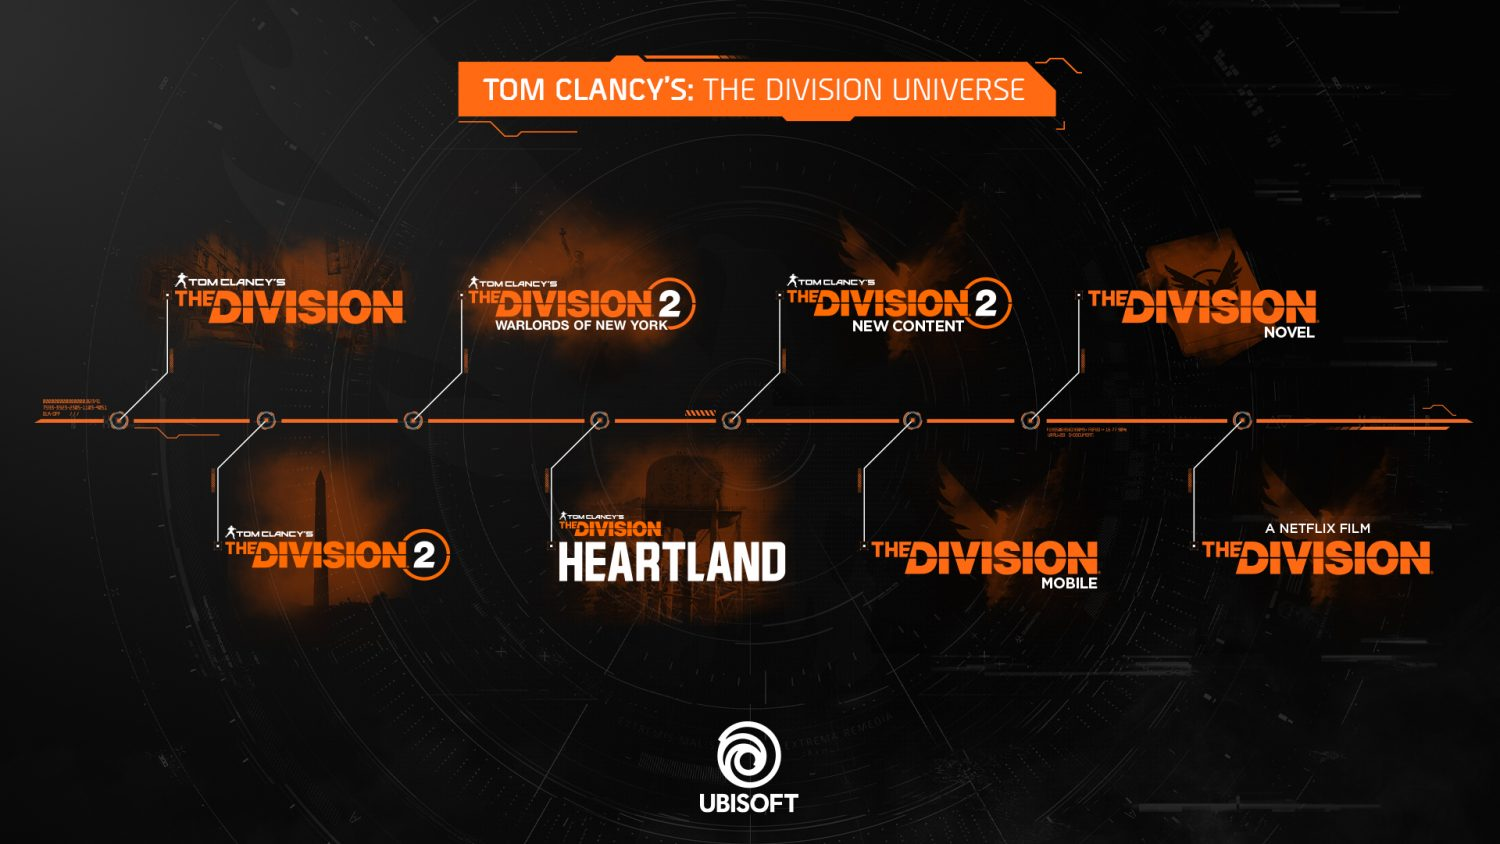 Tom Clancy's The Division Timeline